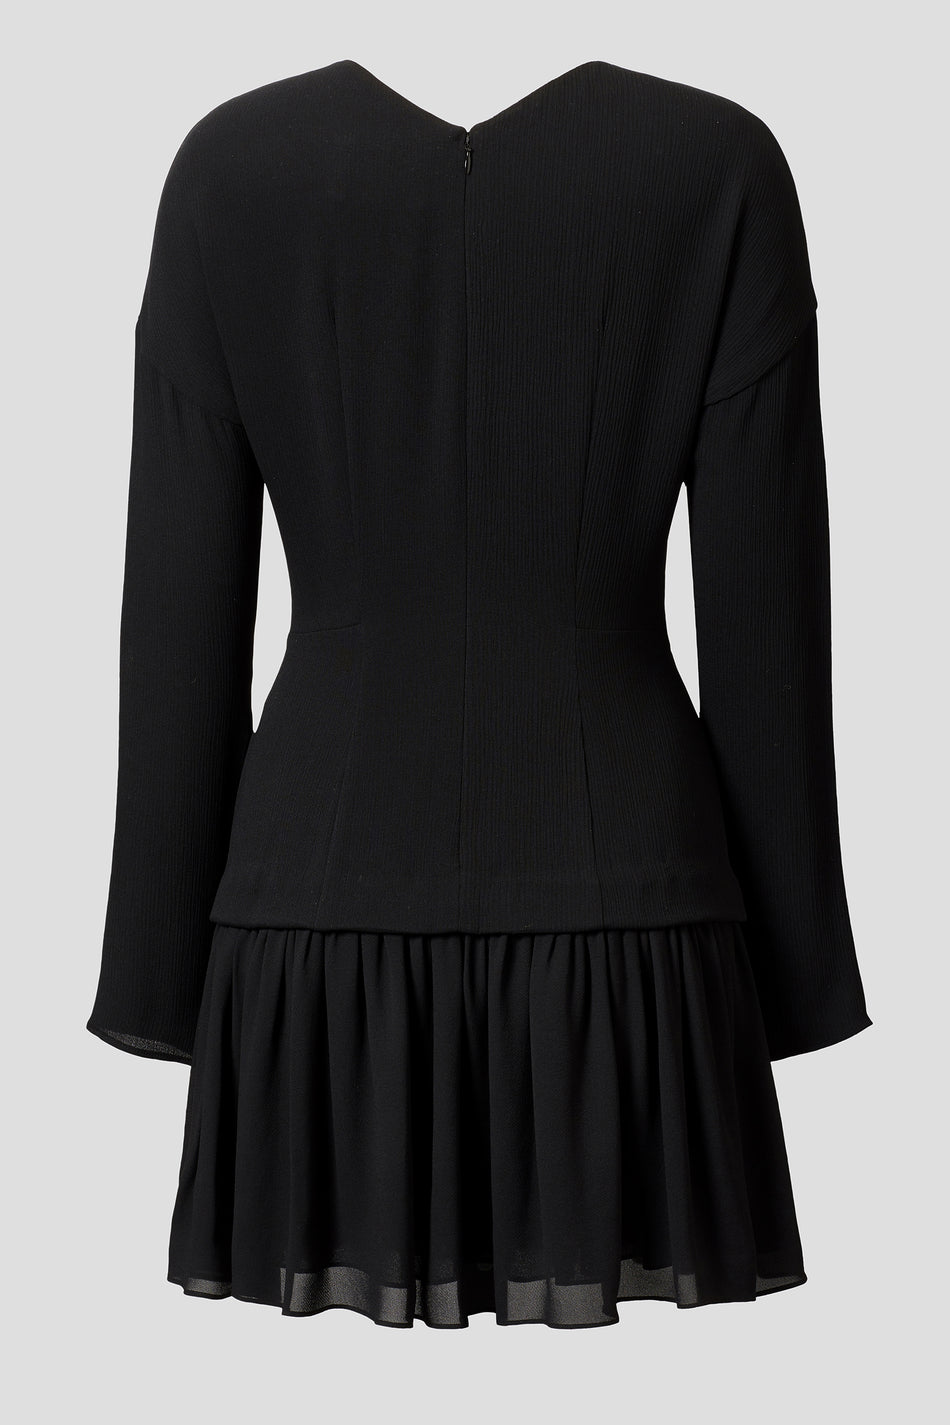 Iris Silk Mini Dress Black